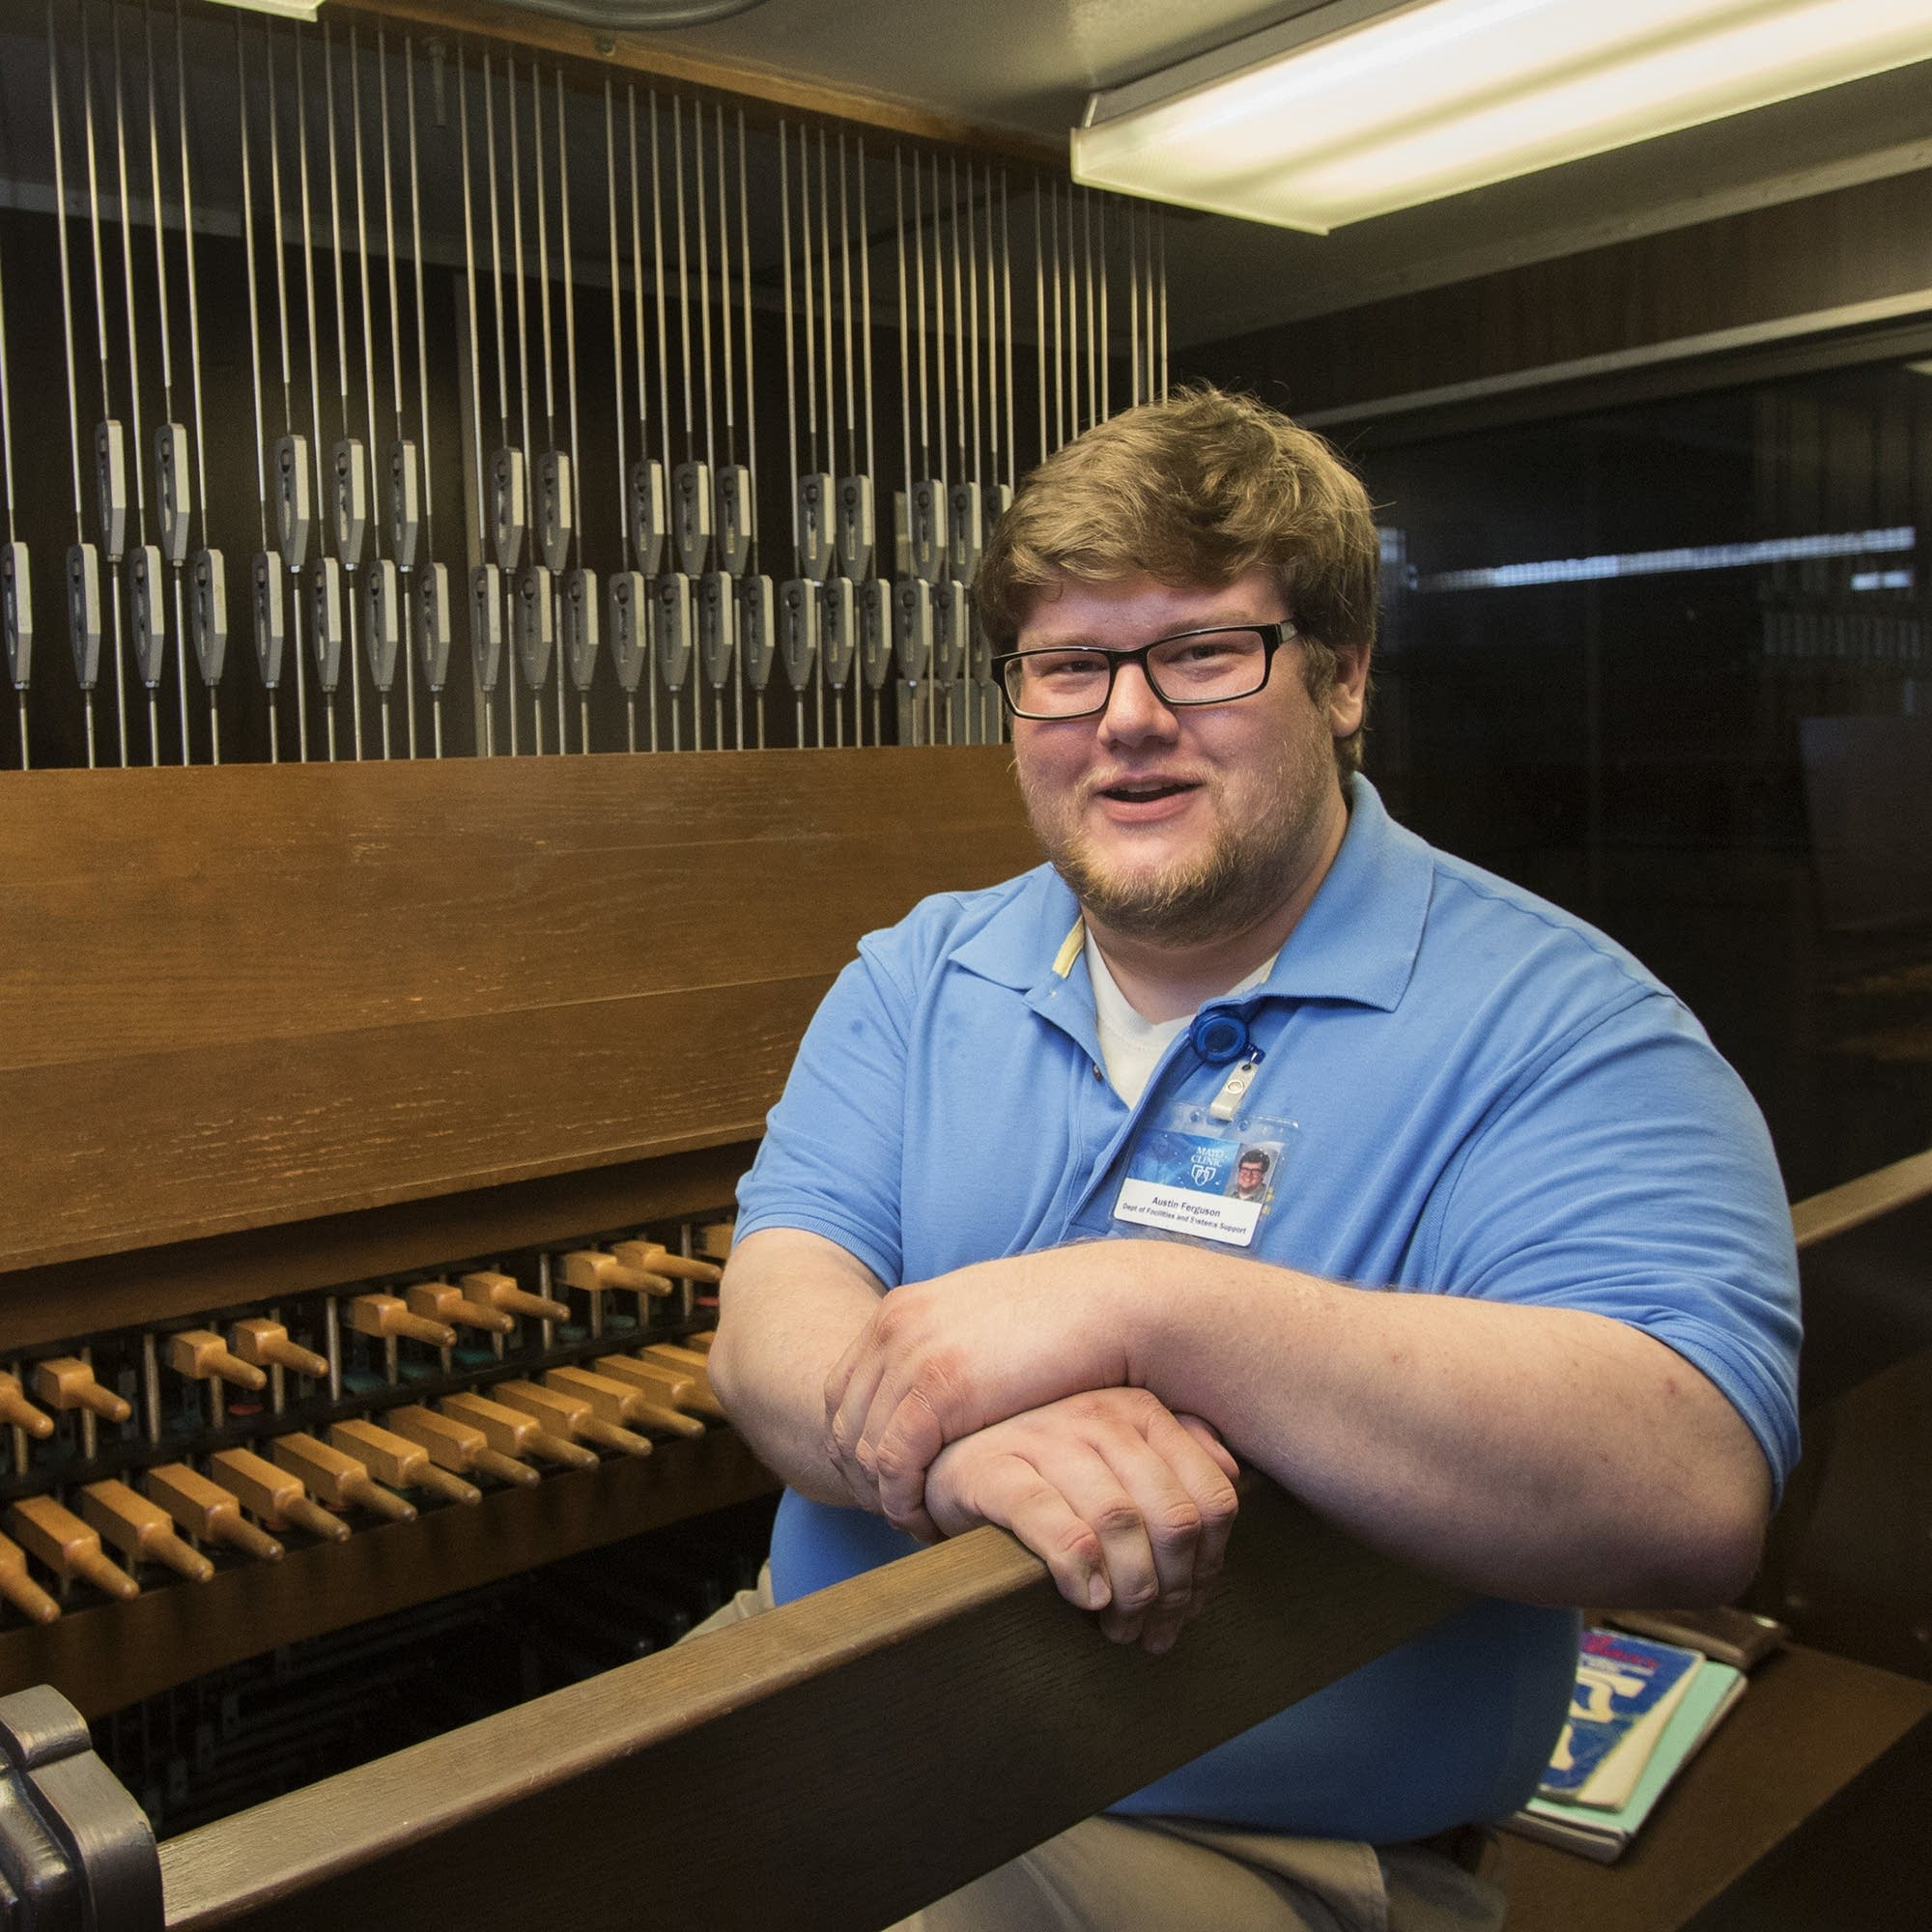 In a tower 300 feet above Rochester, a new carillonneur plays songs